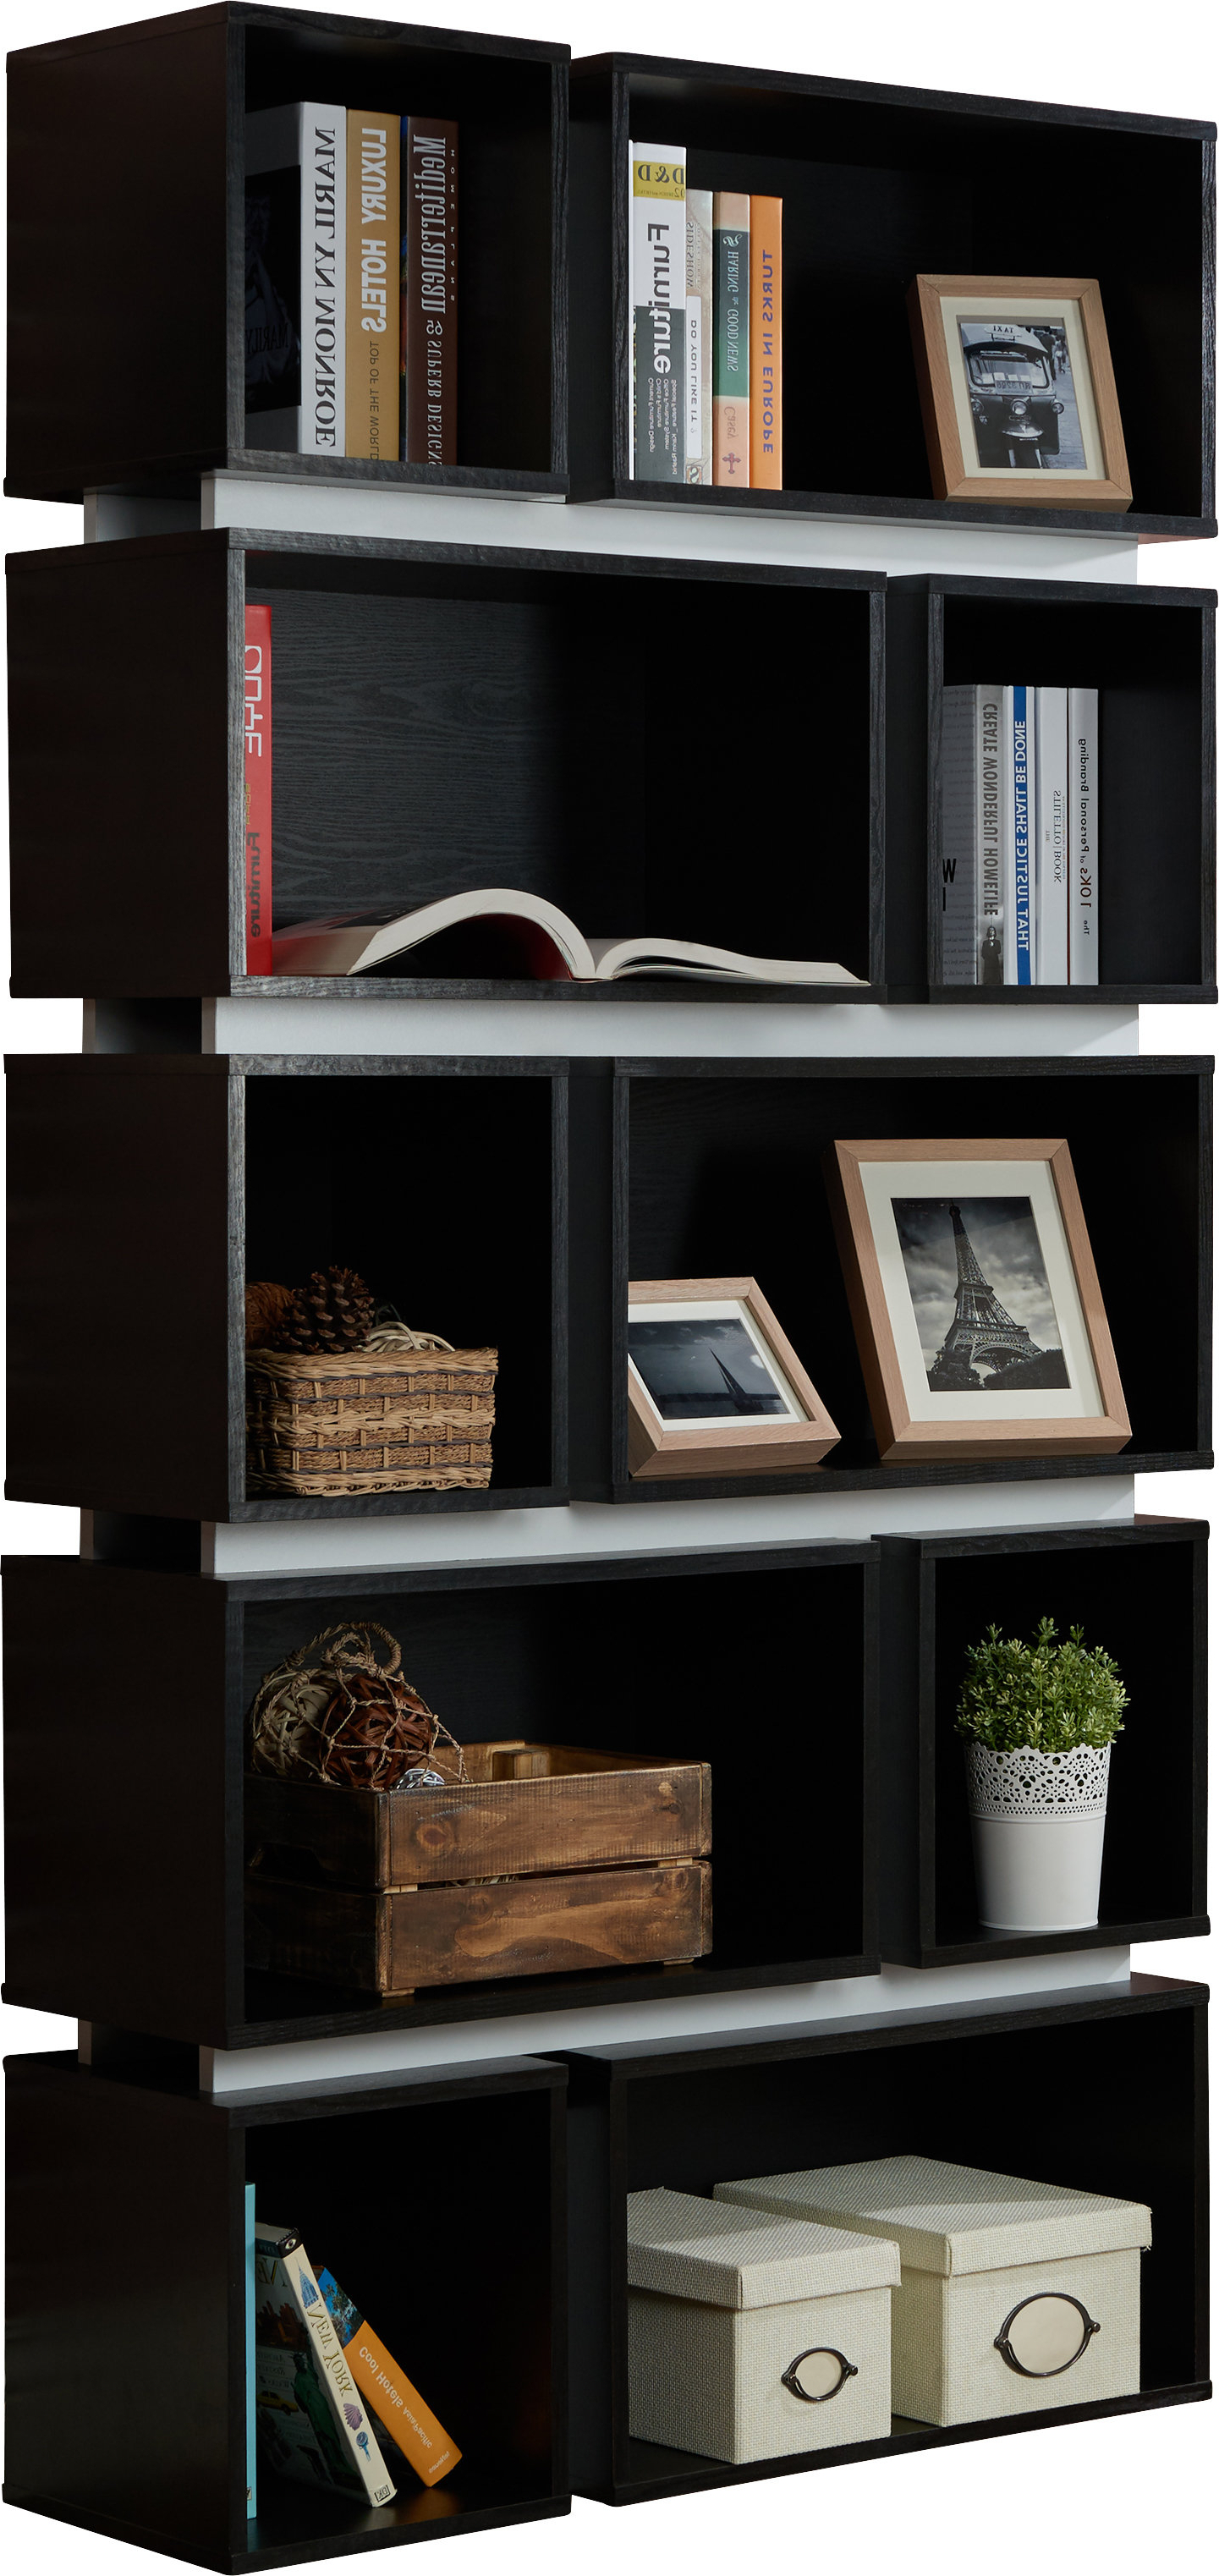 Bradberry Geometric Bookcase Regarding Most Current Swarey Geometric Bookcases (View 5 of 20)